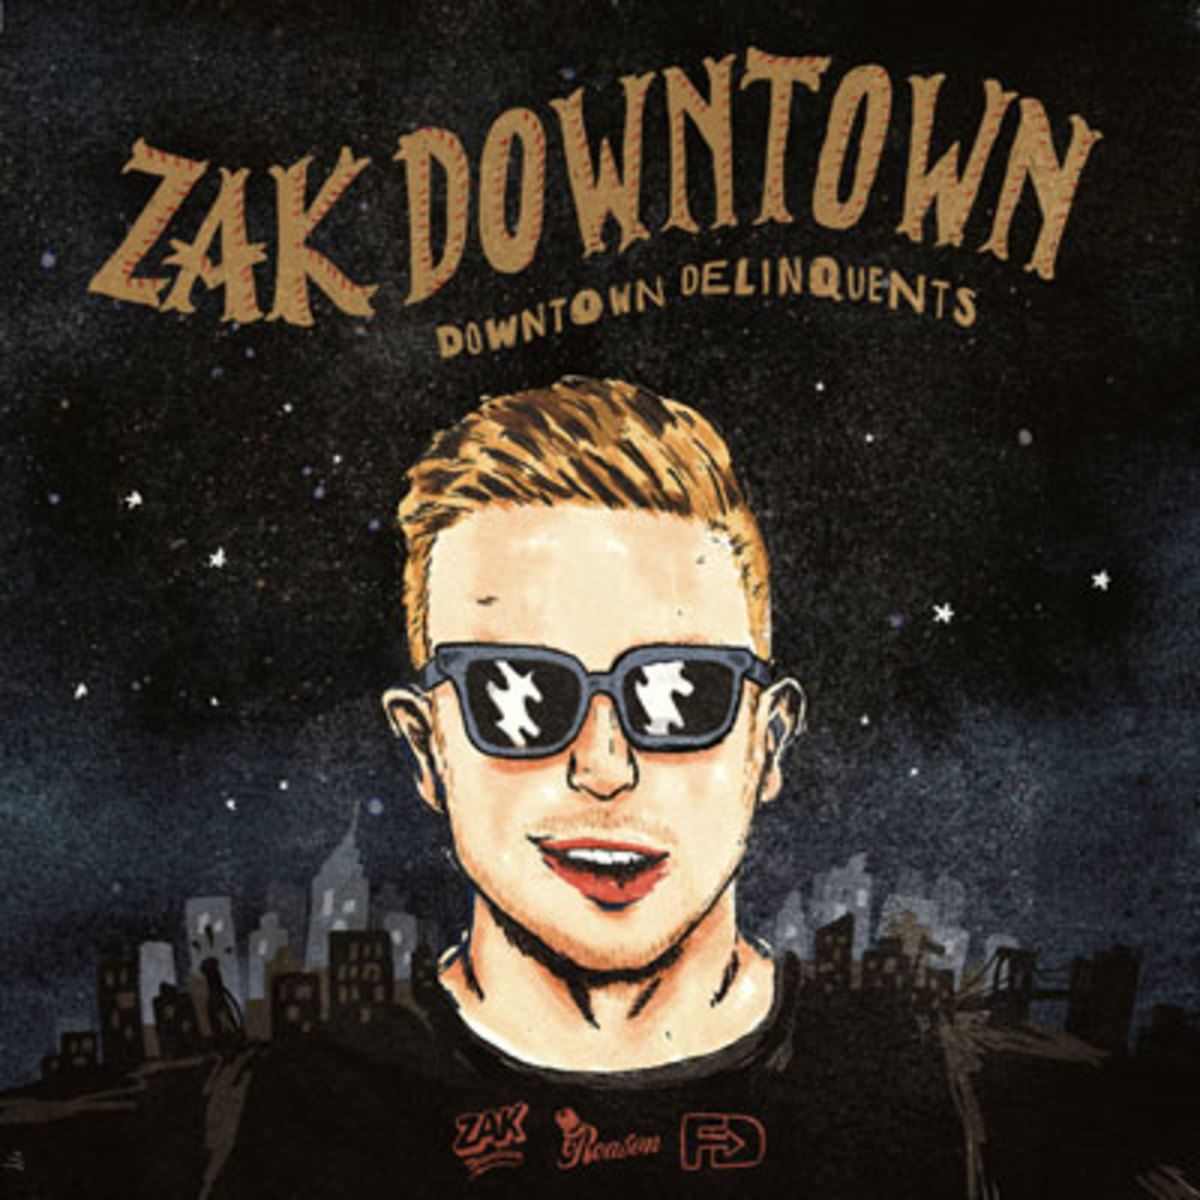 zakdowntown-downtown.jpg